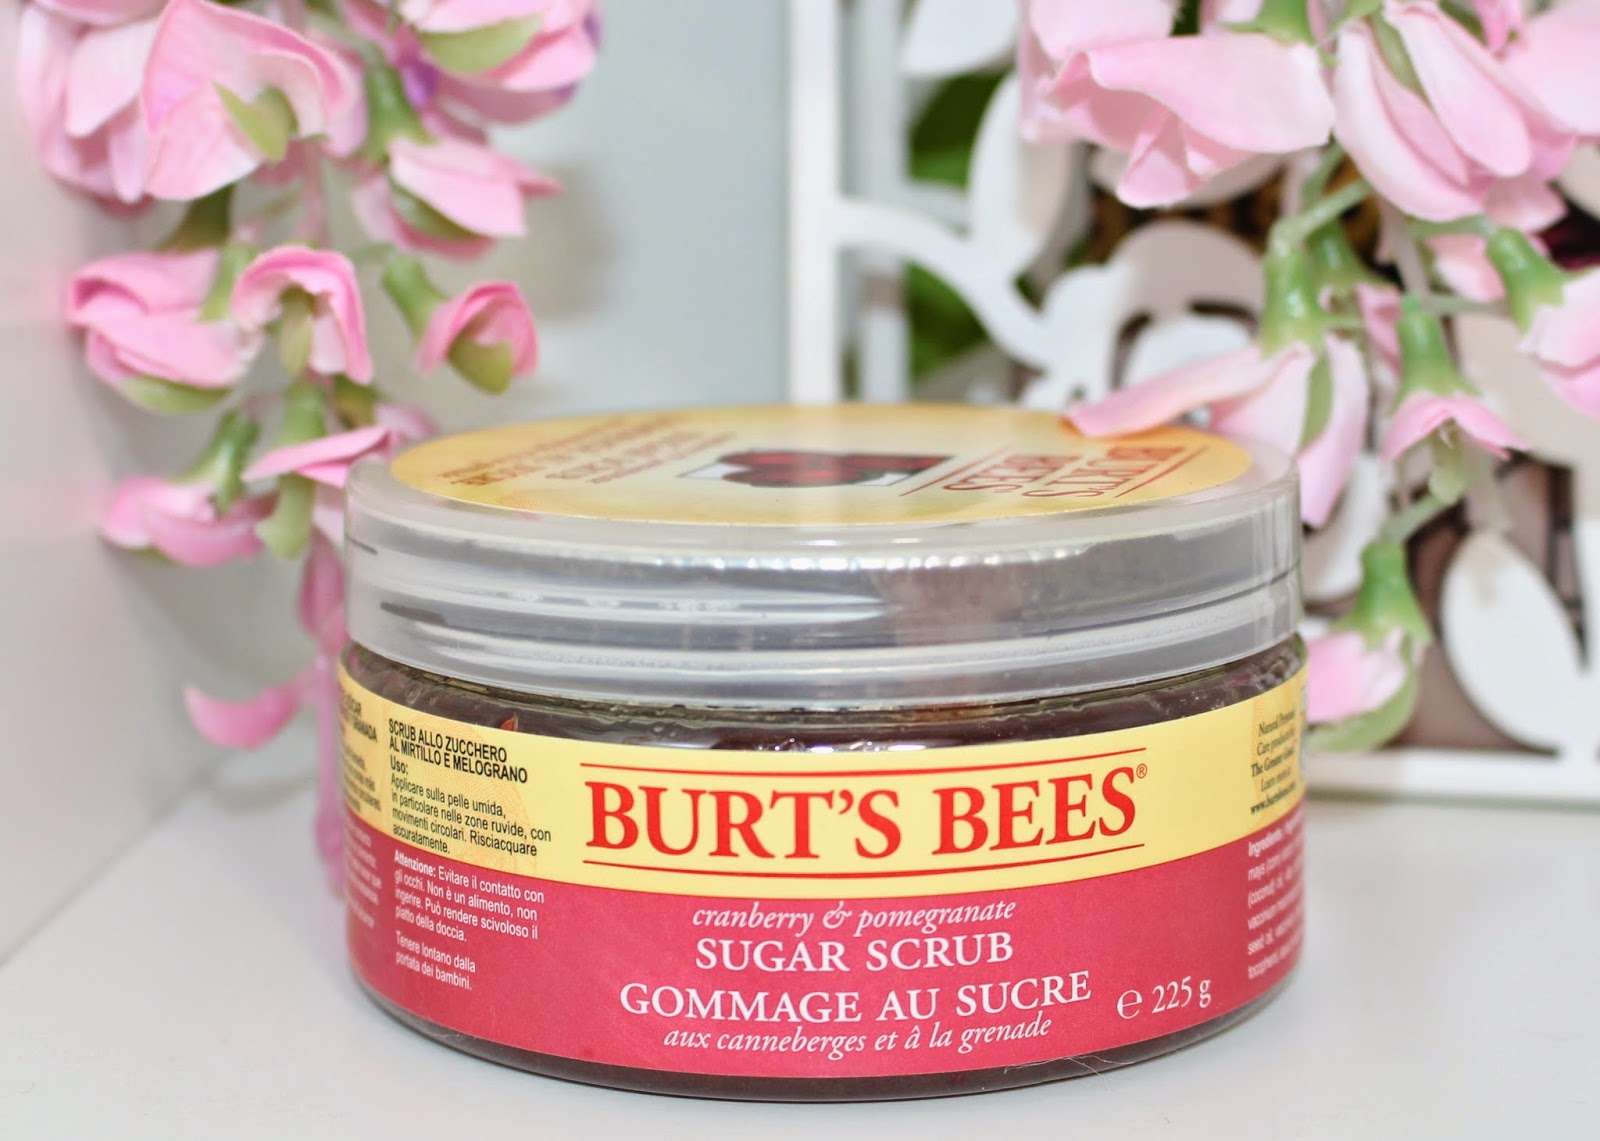 Burt's bees, gommage au sucre, gommage, easyparapharmacie